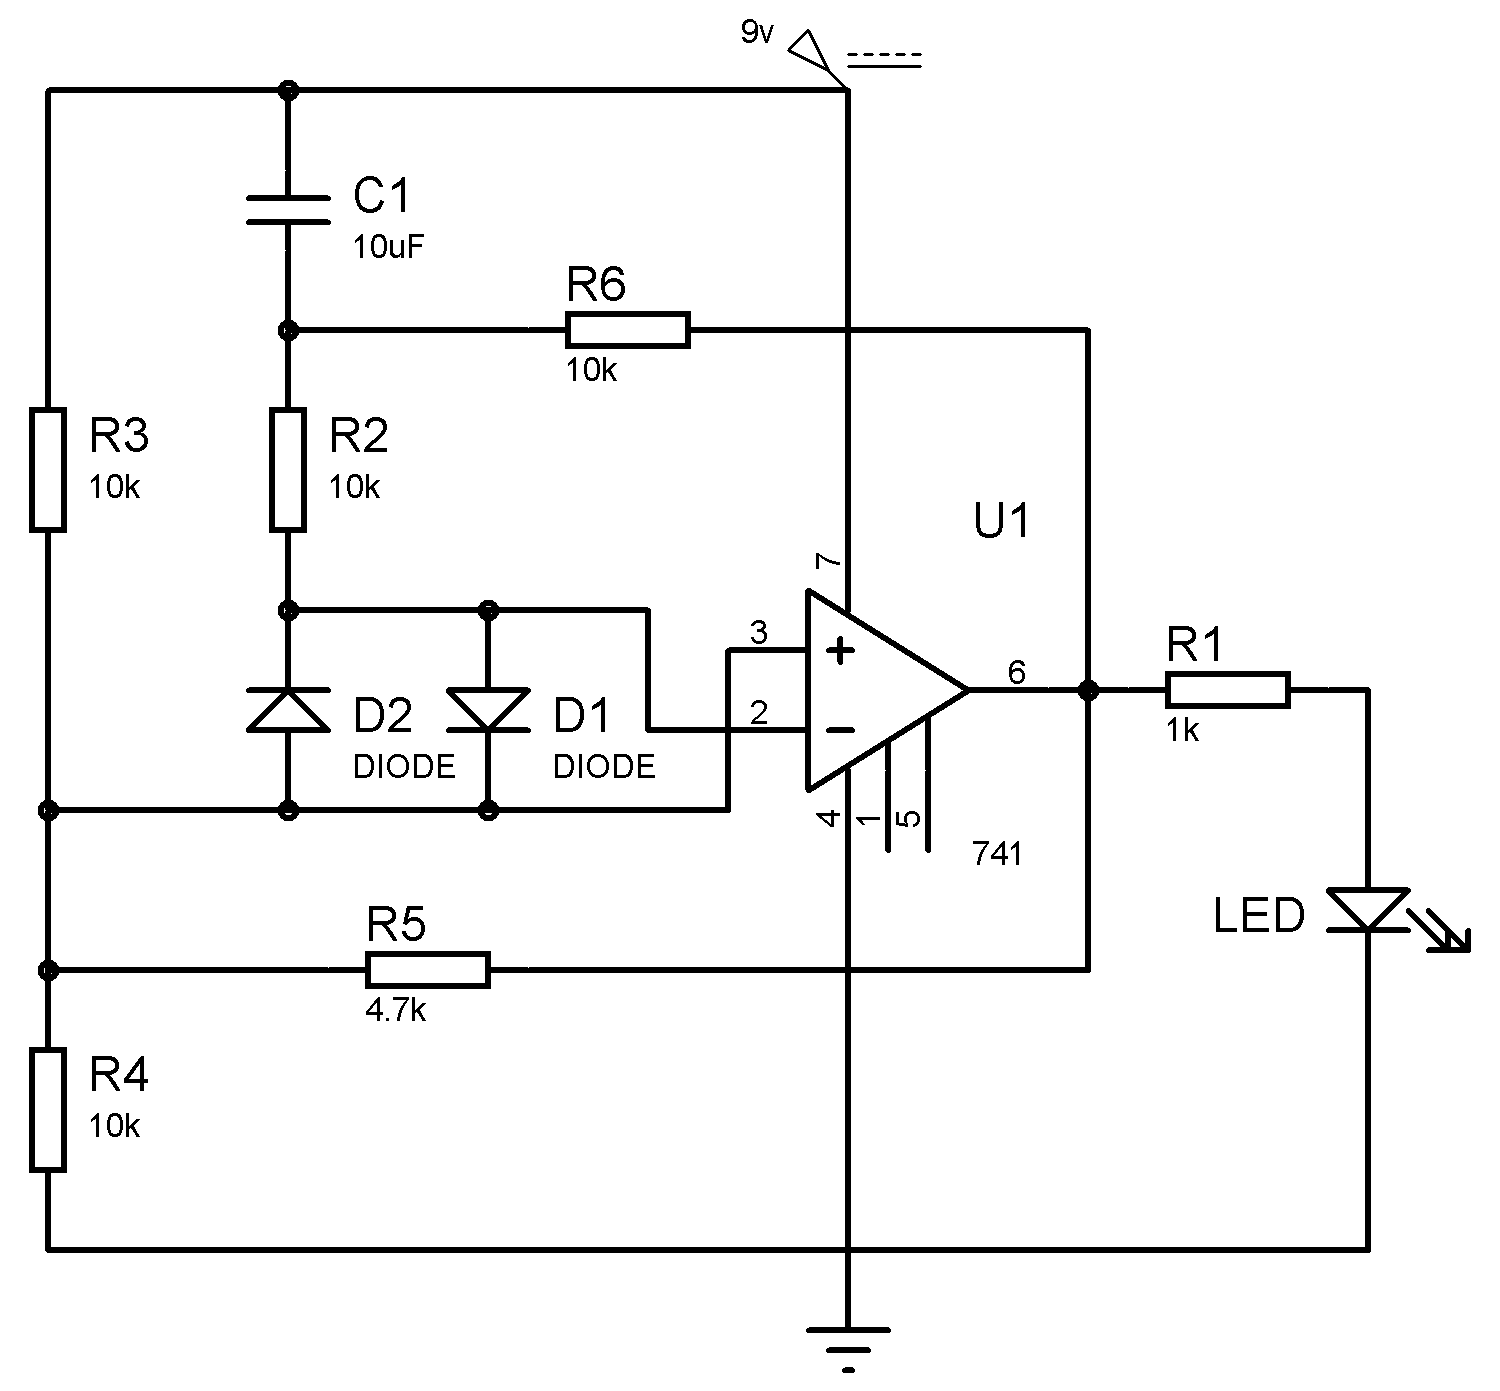 small resolution of operational amplifier opampic741 looks like a small chip the 741 ic op amp comprises of eight pins in an ic 741 op amp pin2 and pin6 are the input and